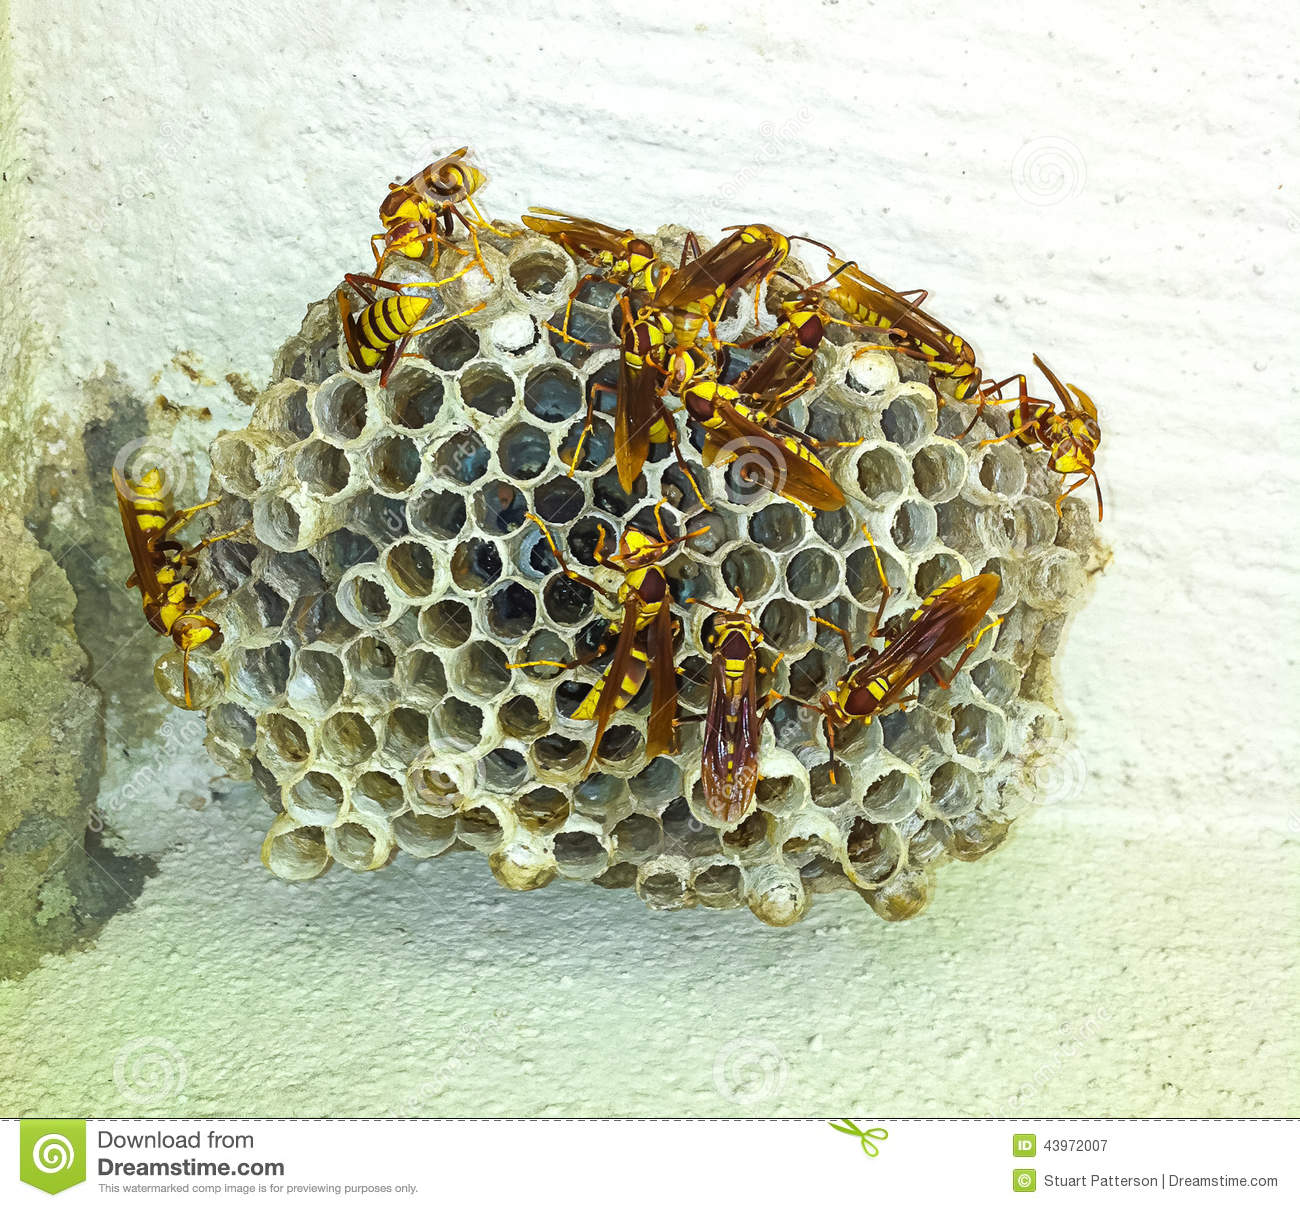 Wasp Nest on Wall